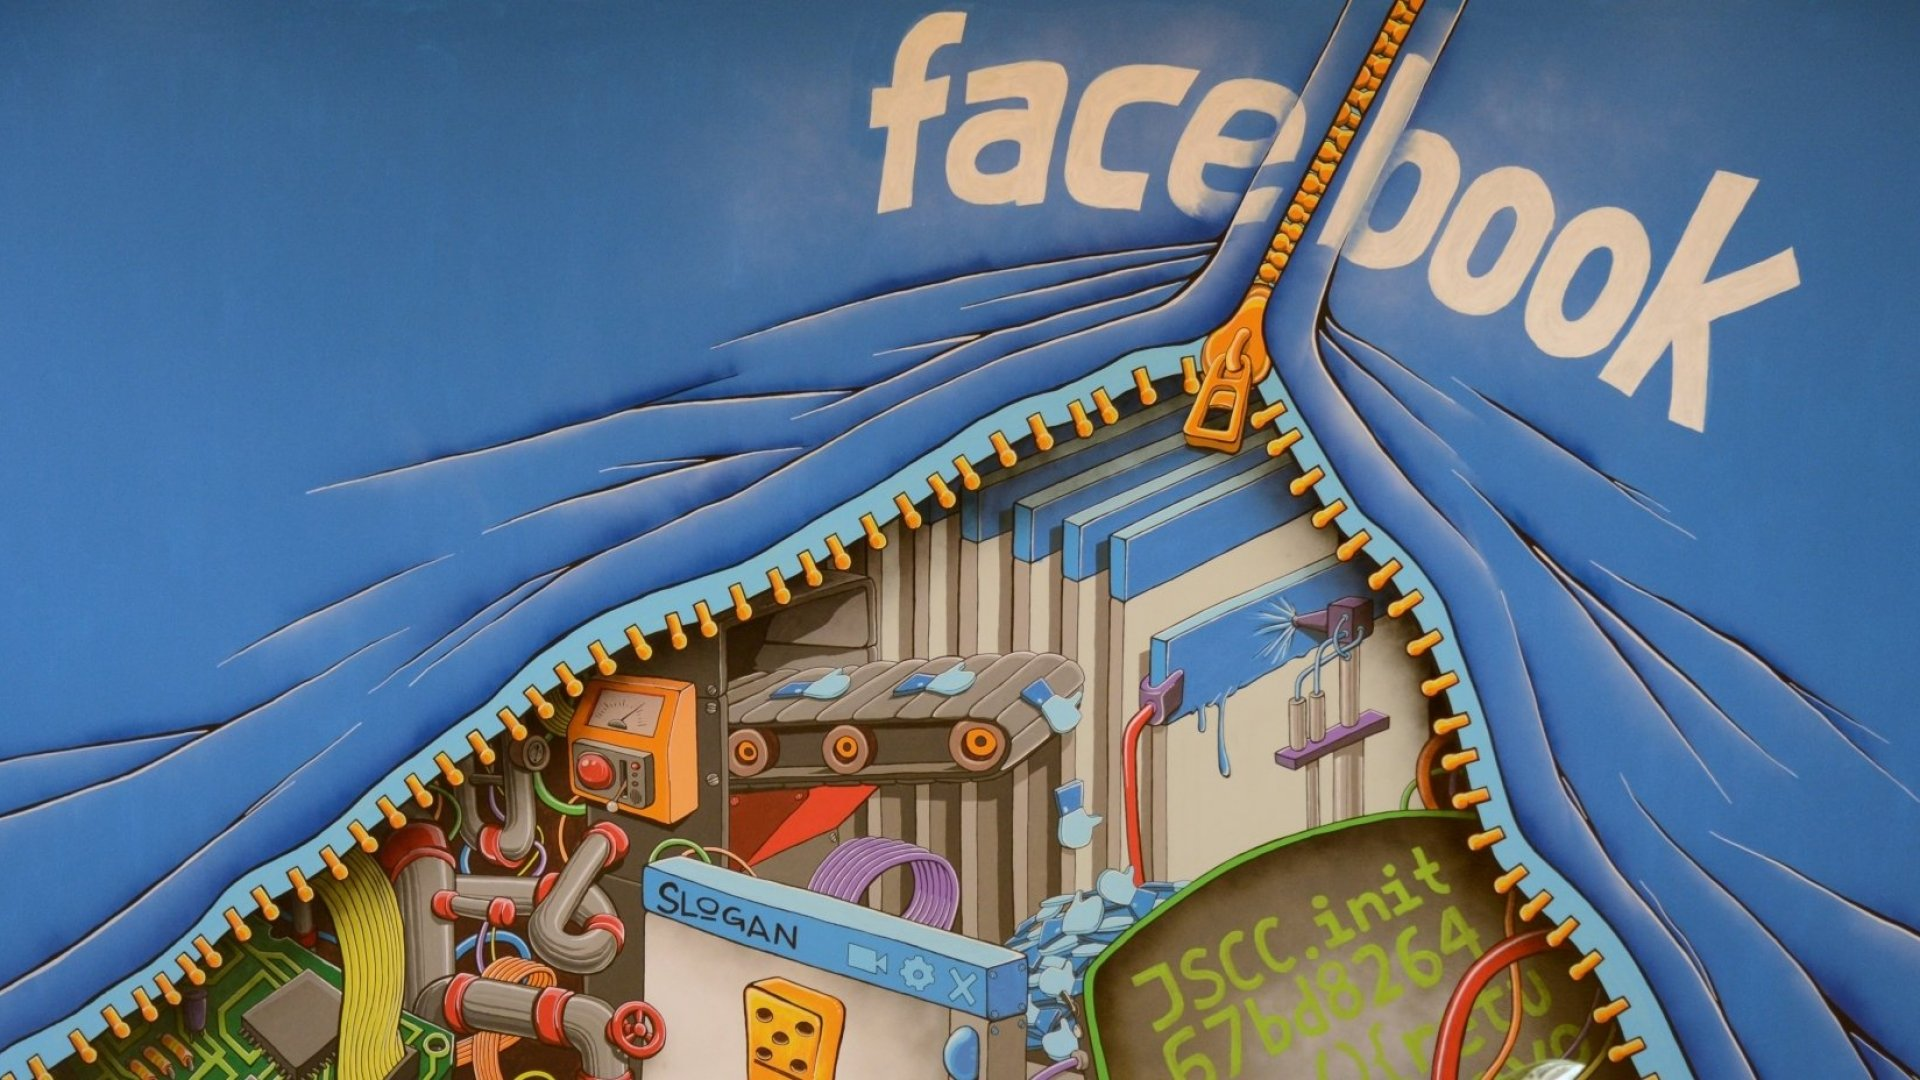 11 Insanely Cool Benefits for Facebook Employees